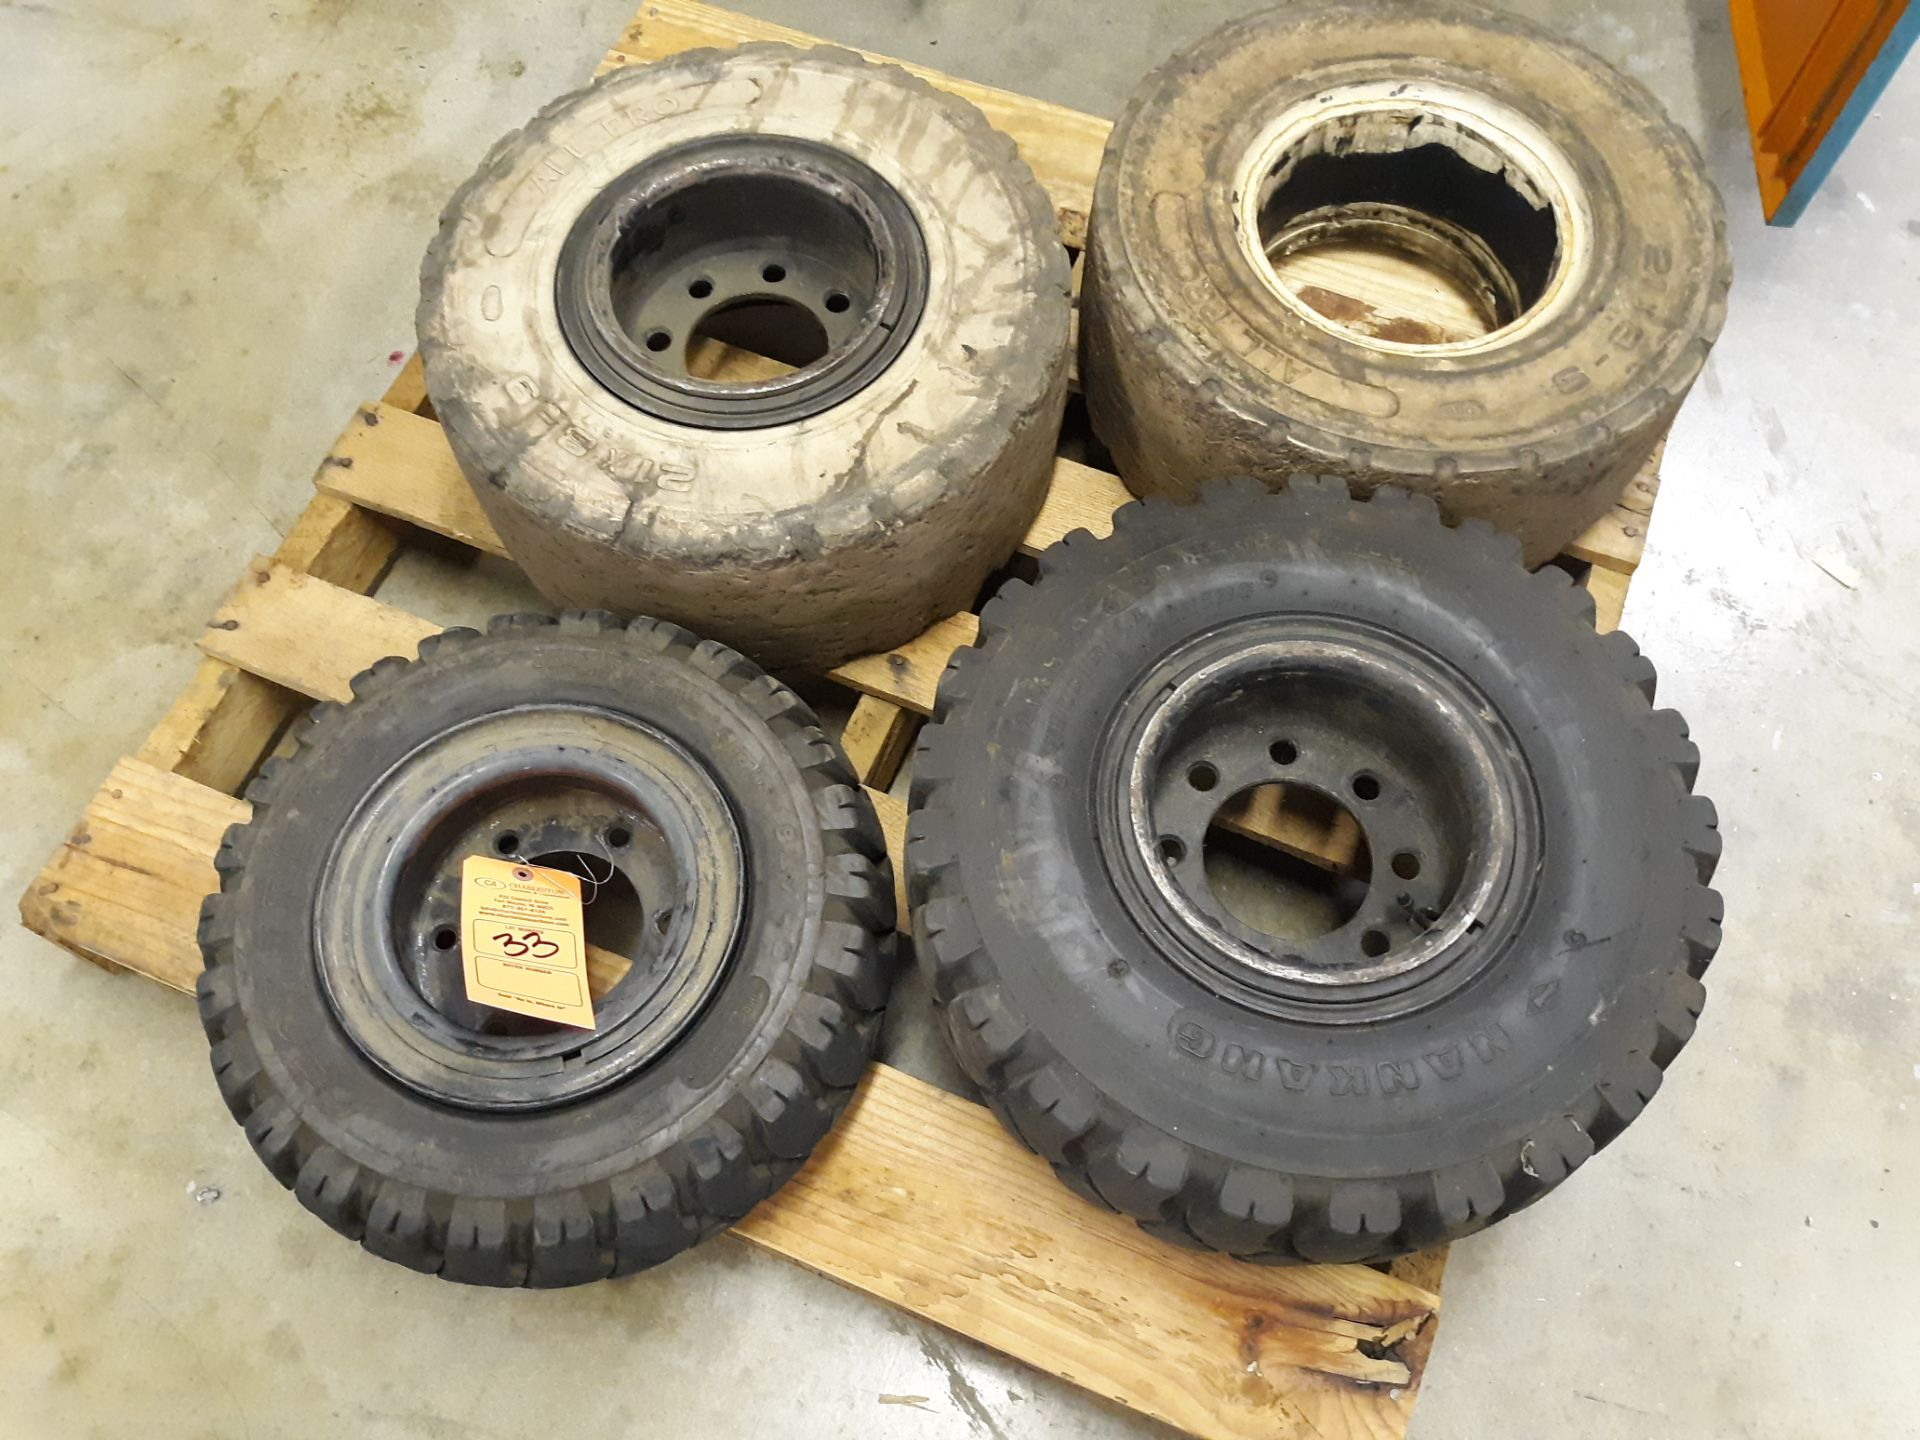 Lot 33 - (4) FORKLIFT TIRES (2) SOLID WHITE RUBBER 21 X 8-9; RIGGING FEE $10